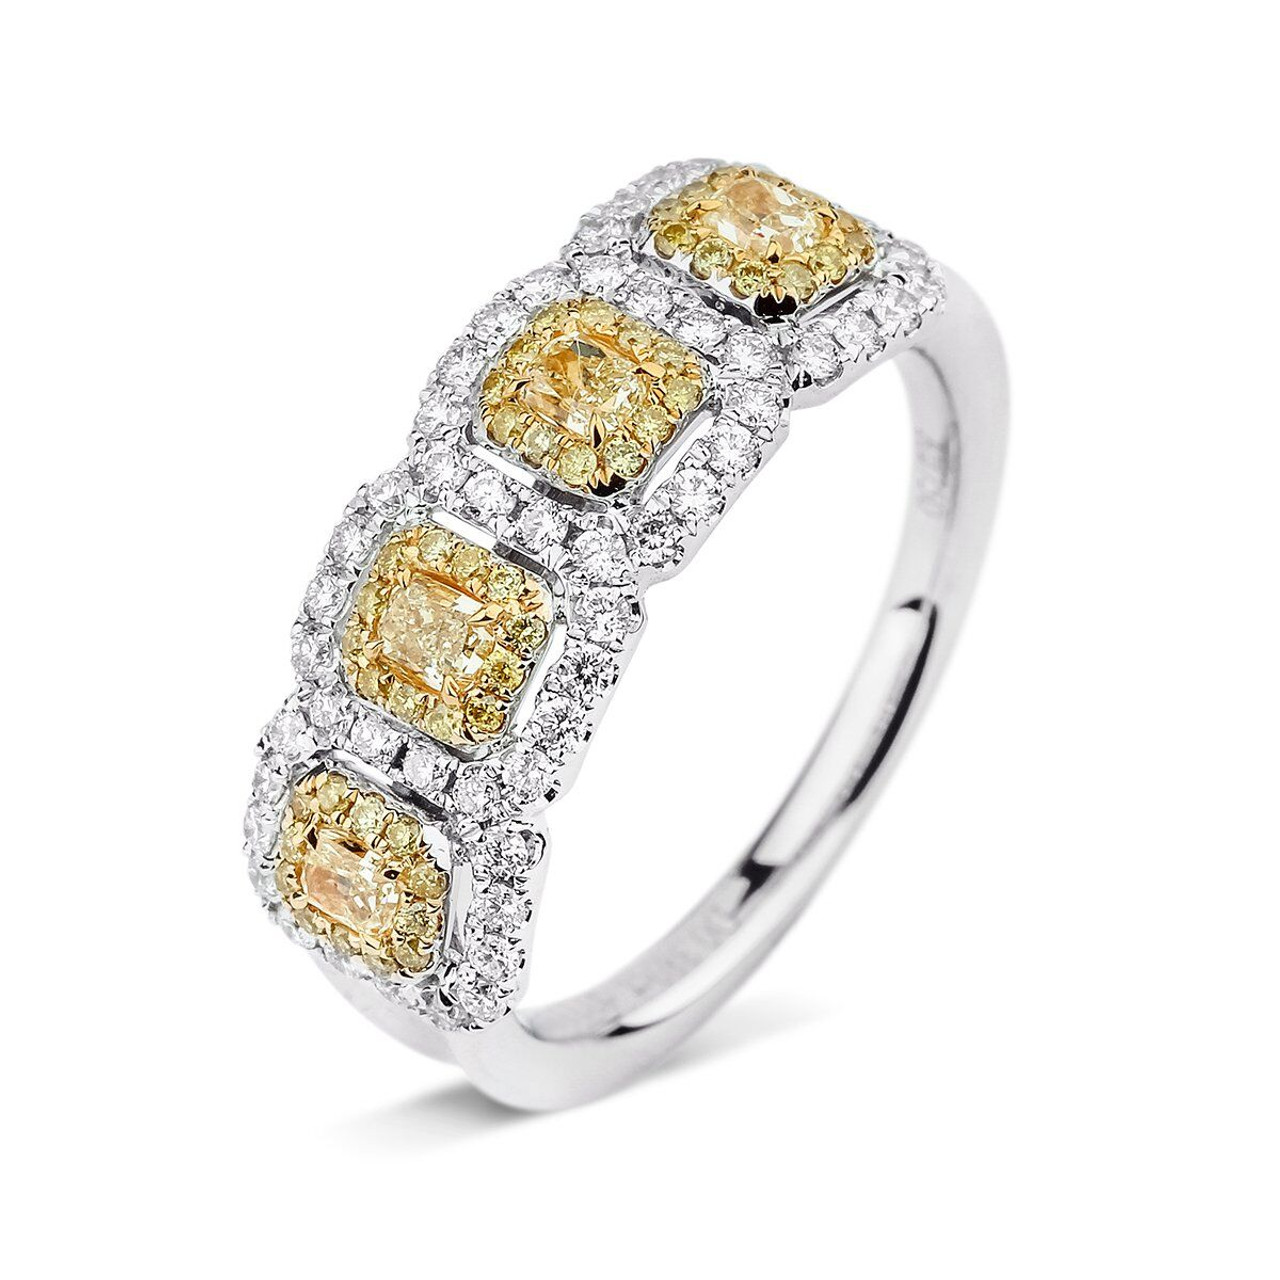 18kt White And Yellow Gold 4 Stone Double Halo Yellow Diamond Ring